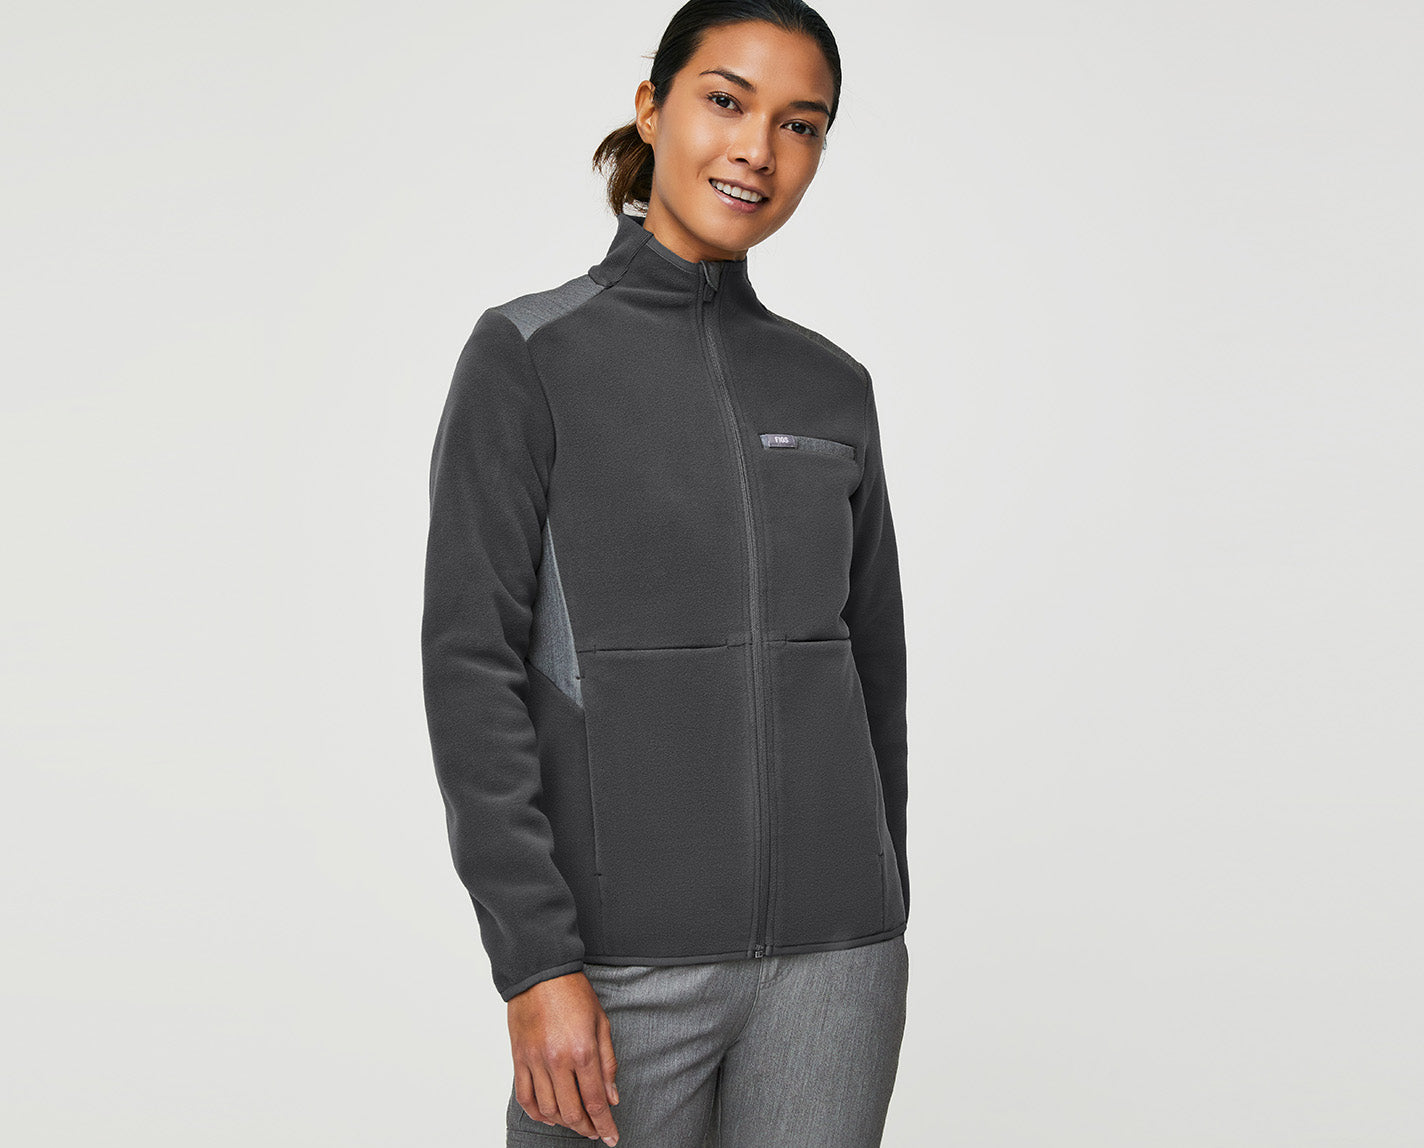 Our On-Shift Fleece Jacket keeps your core warm without limiting your range of motion. Plus, it features a contrasting front panel and back yoke made from our proprietary FIONx fabric so that it matches your scrubs perfectly. It's the ideal layer to combat A/C-friendly hospitals. Or unpredictable weather patterns. Or the frozen food section of the grocery store. And, yes, of course it has lots of pockets.